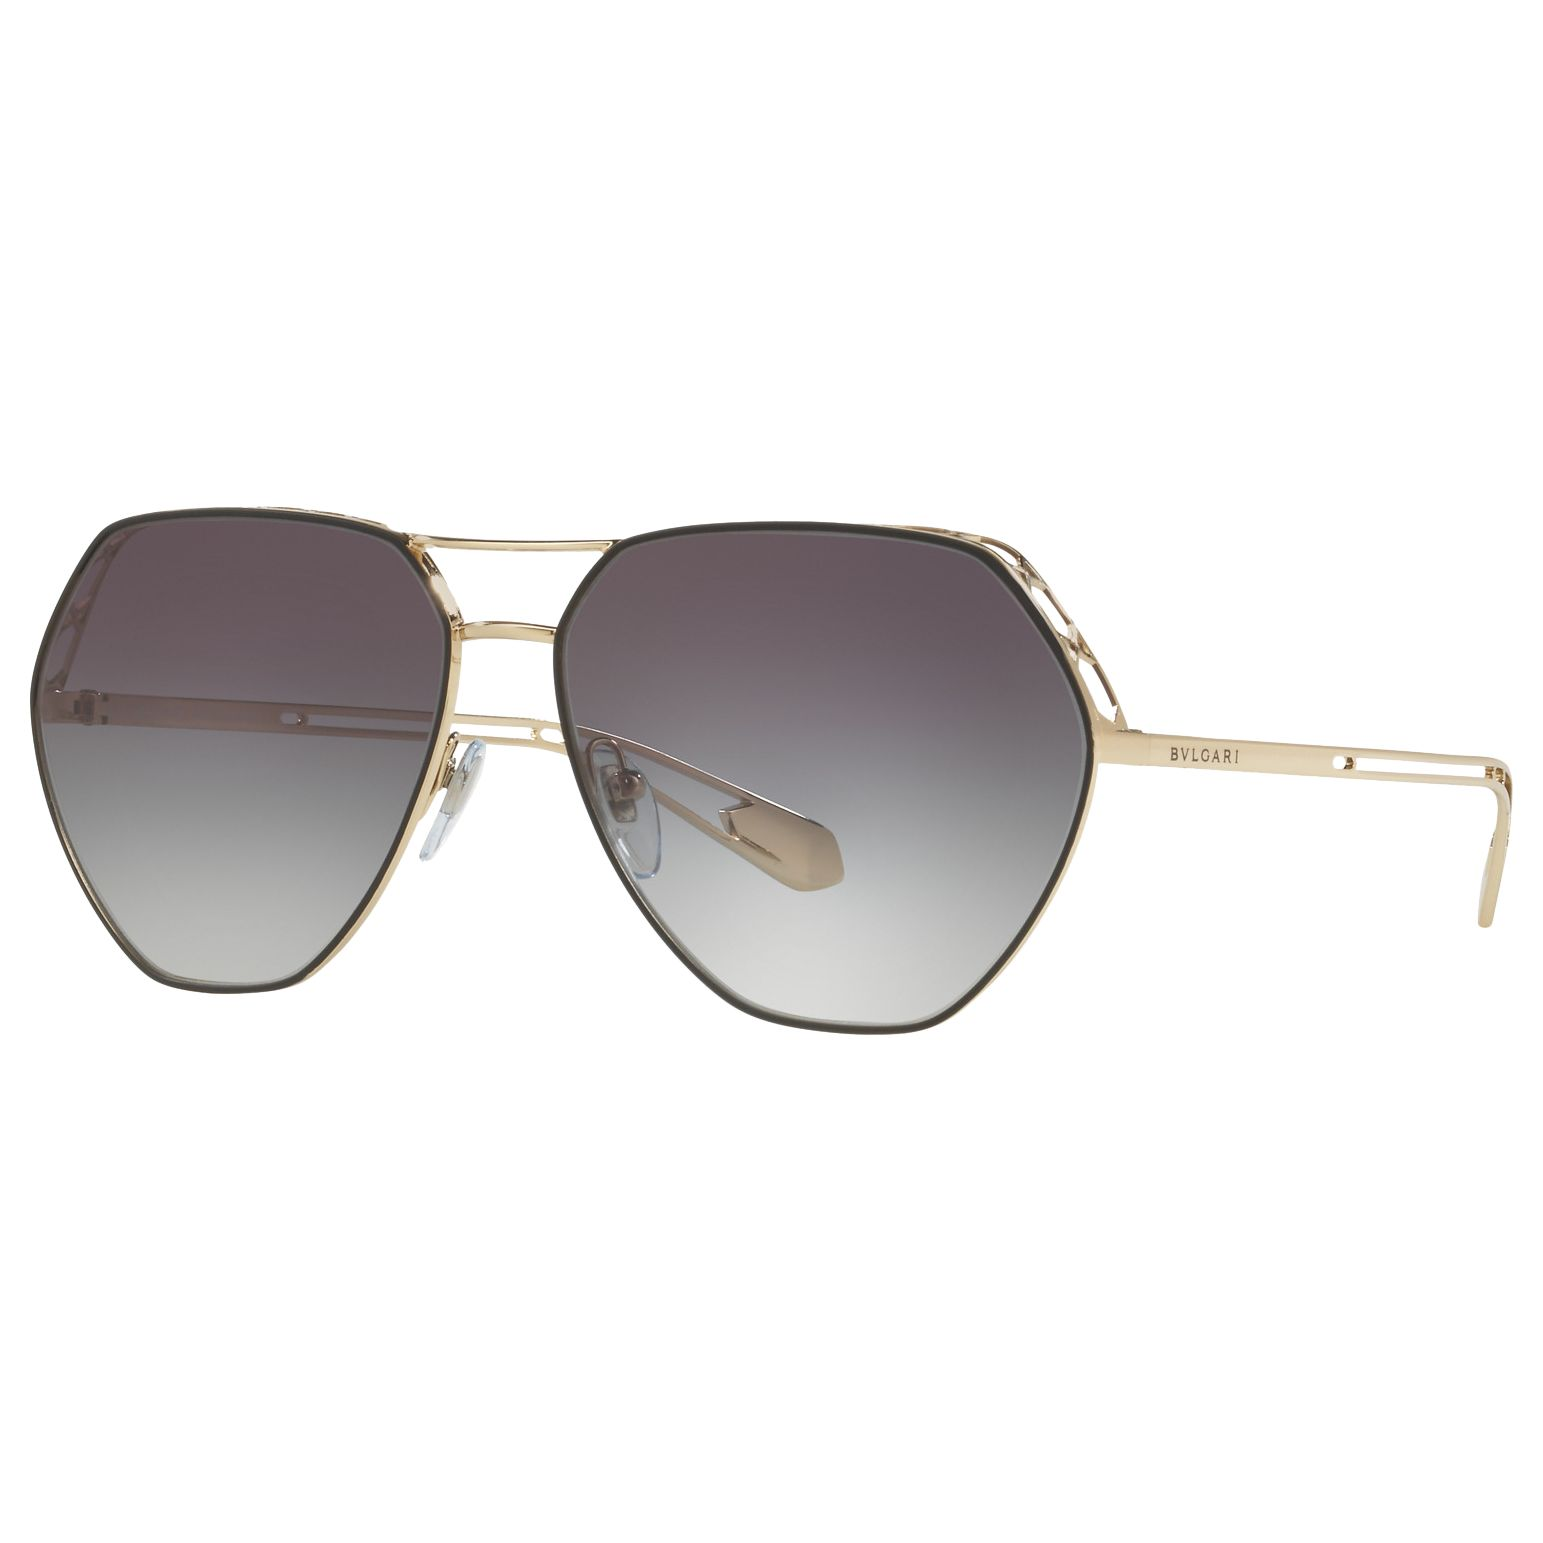 Bvlgari BVLGARI BV6098 Women's Aviator Sunglasses, Gold/Black